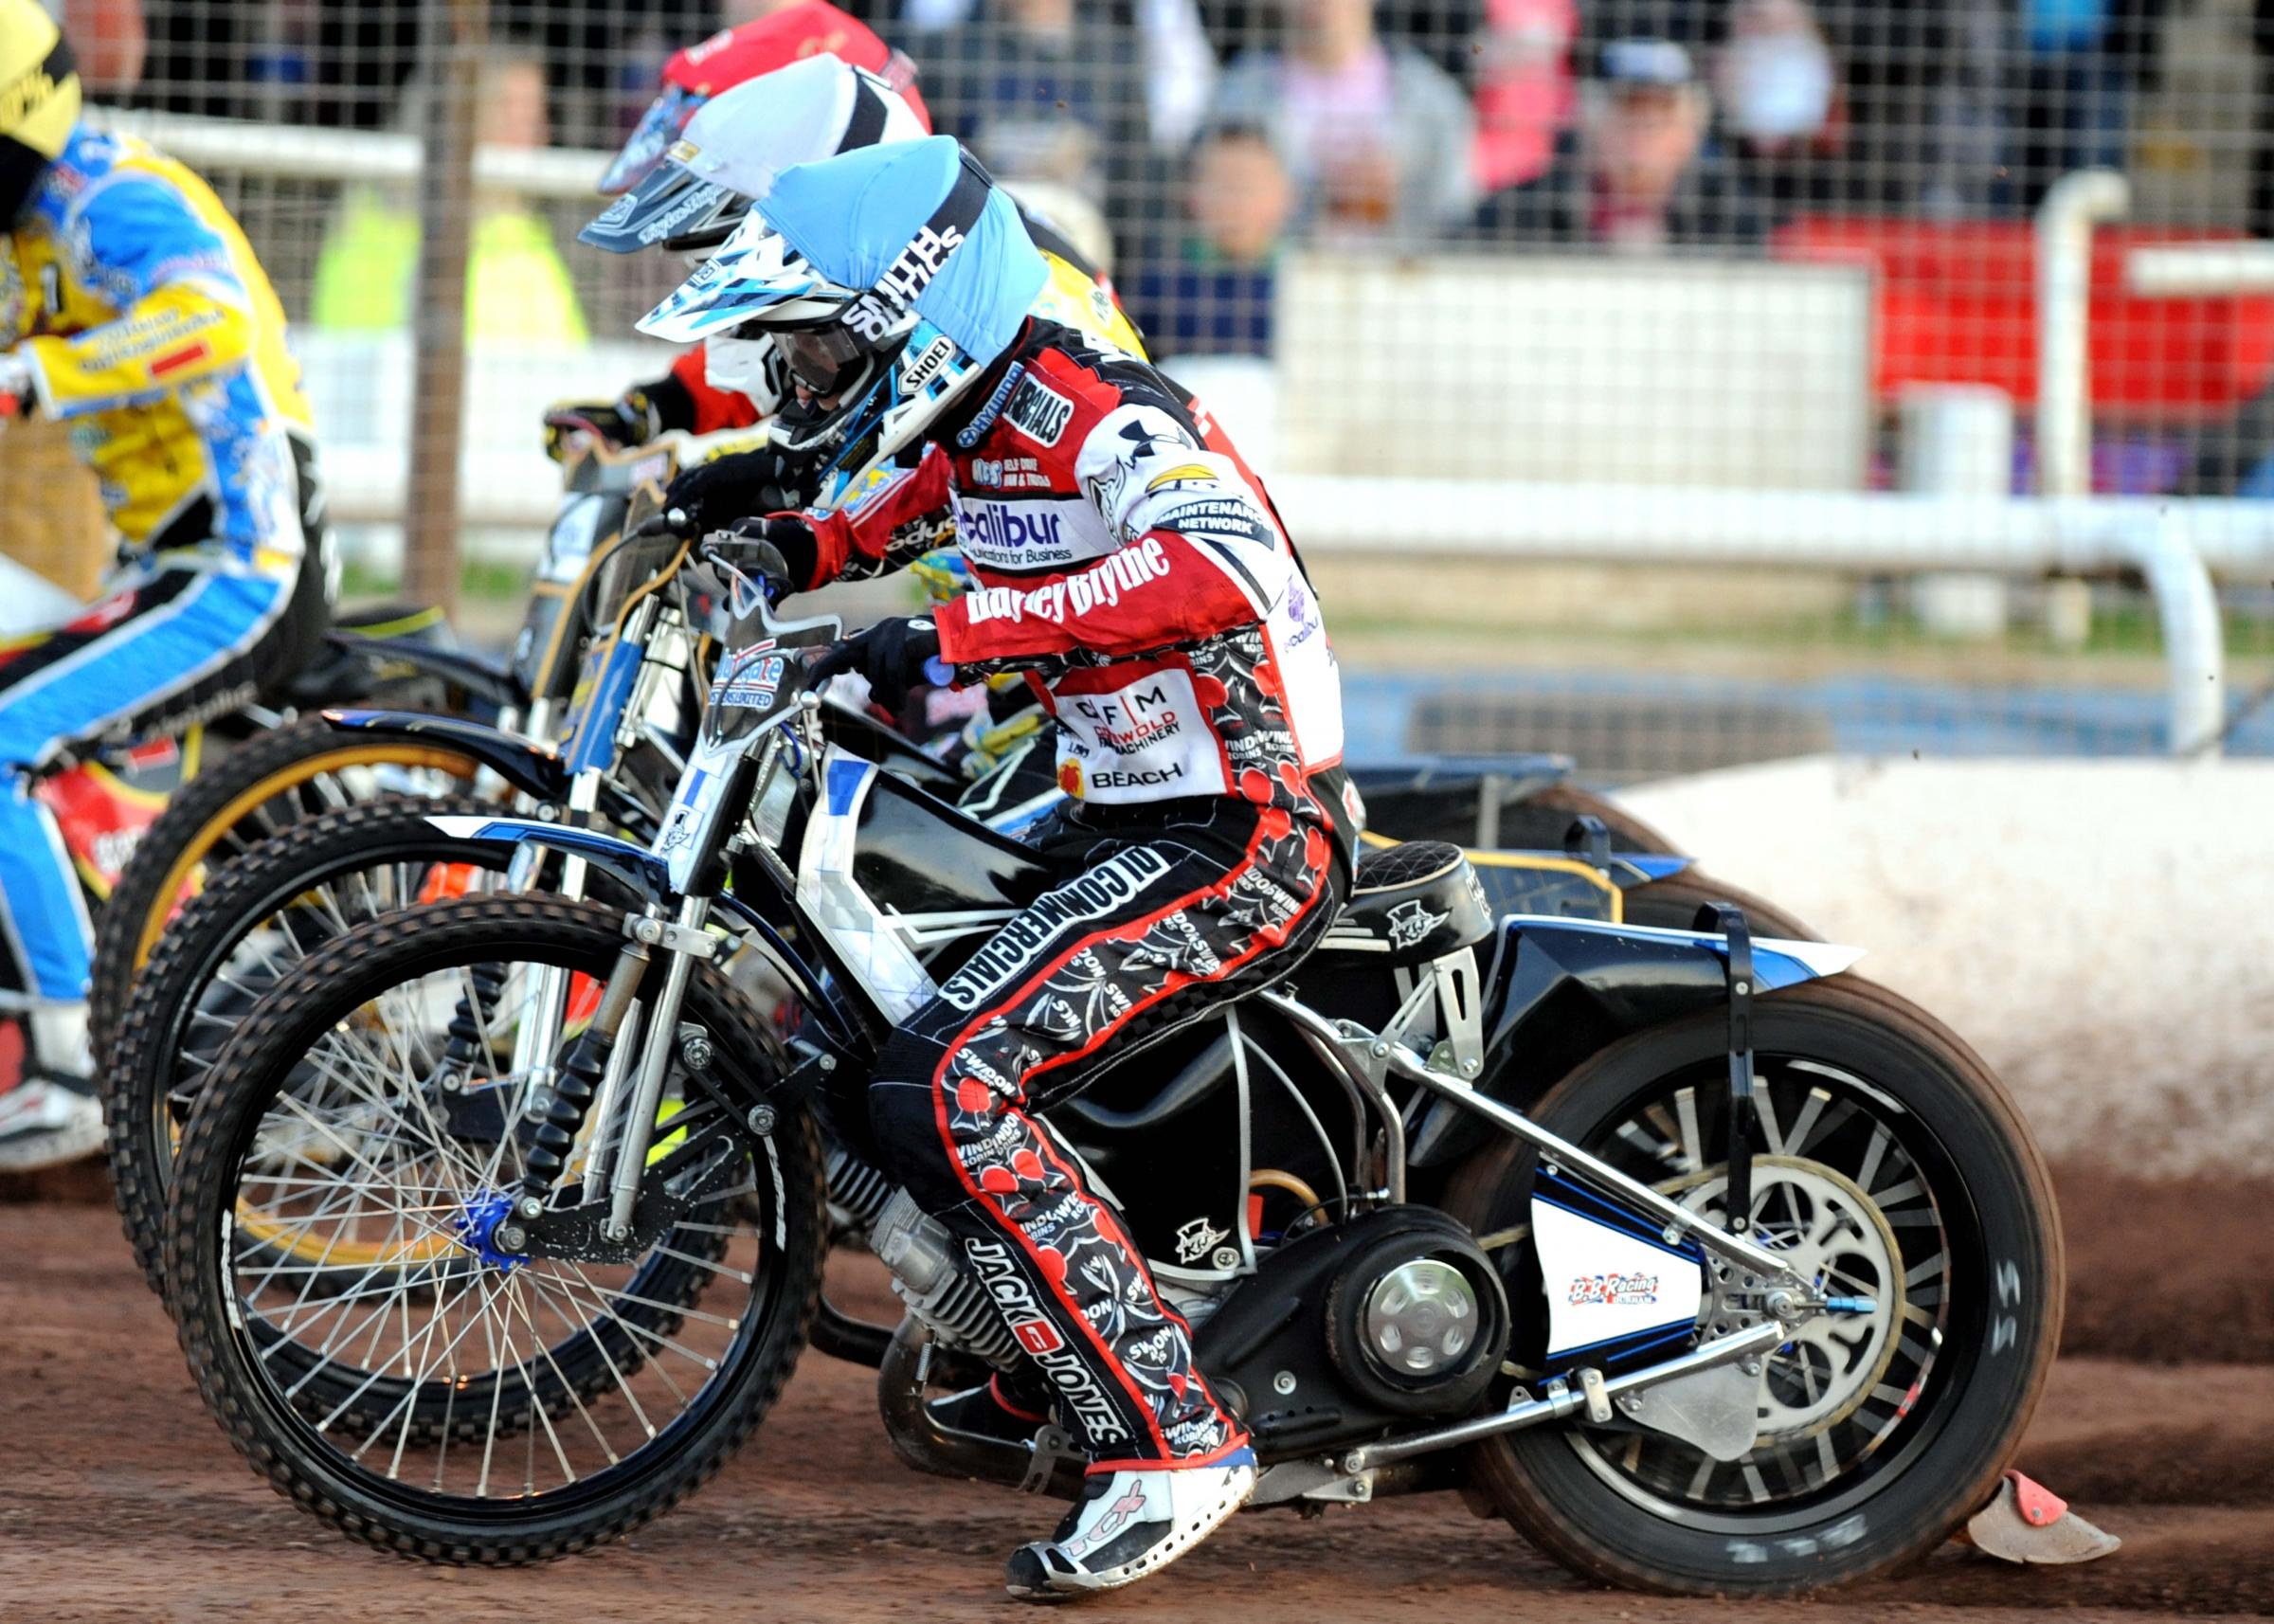 Action from last night's meeting between Swindon Robins and Eastbourne Eagles